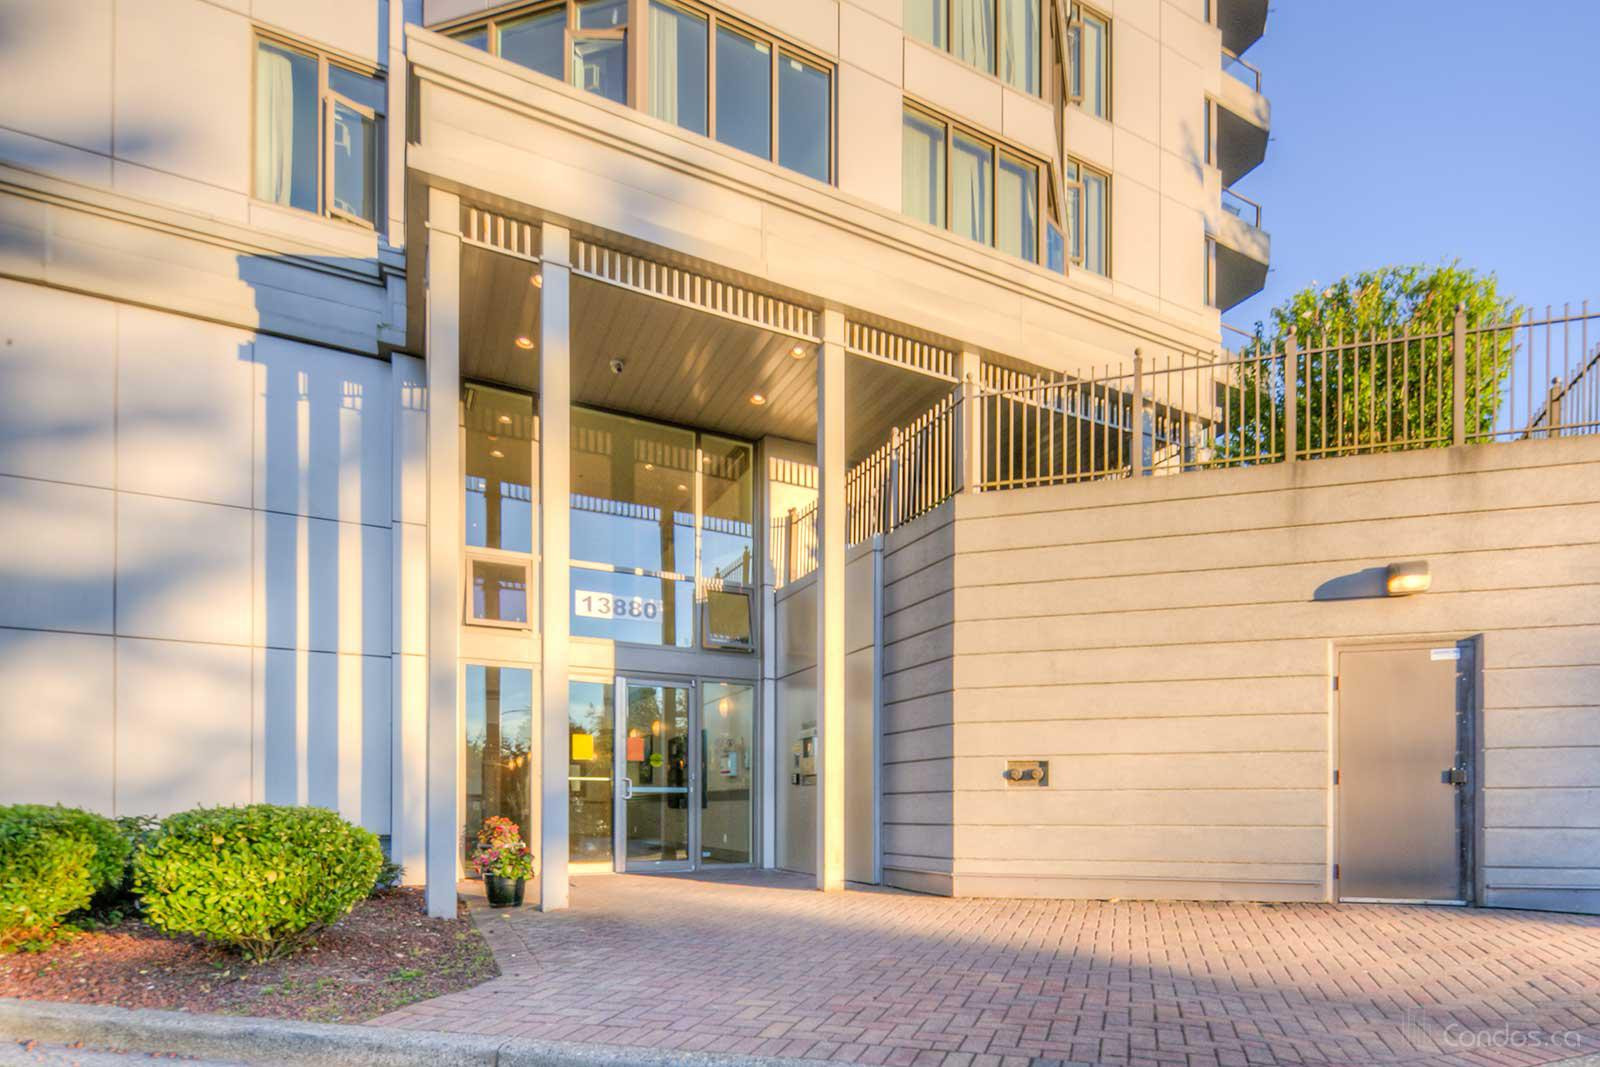 Odyssey Tower at 13880 101 Ave, Surrey 1